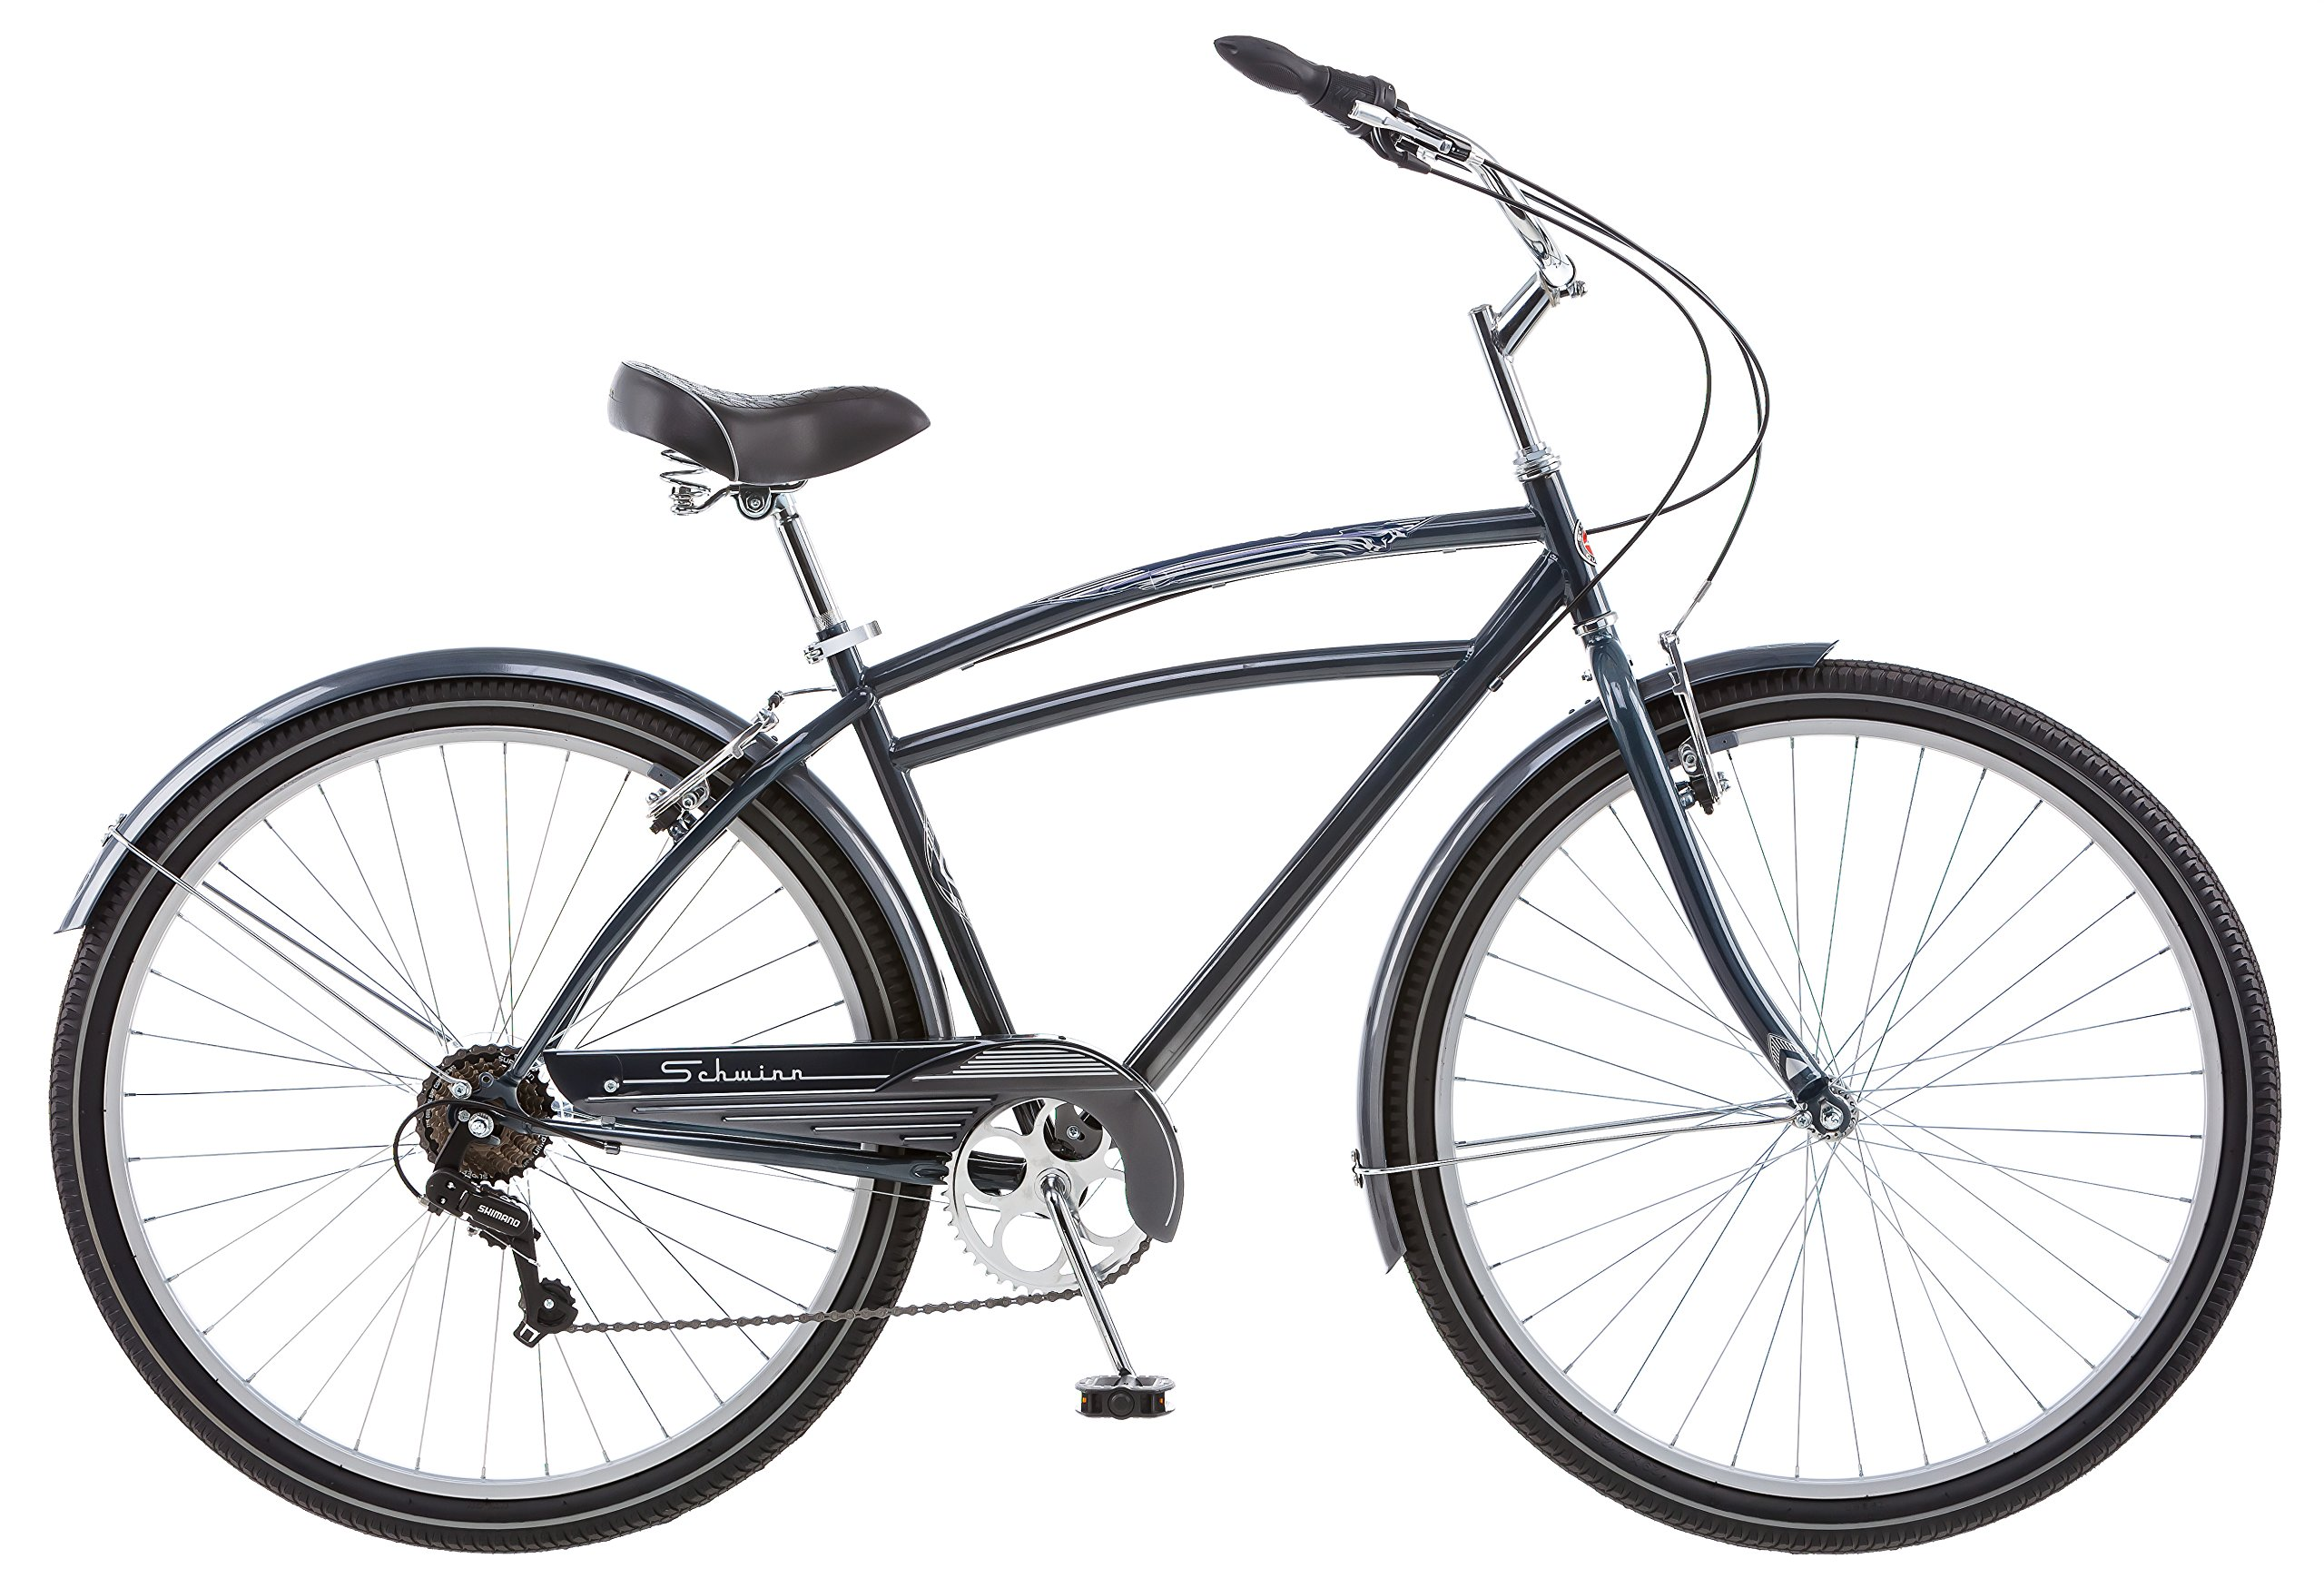 Schwinn S4012C Mens Costin 7 Speed Cruiser Bike, Grey, 29-Inch